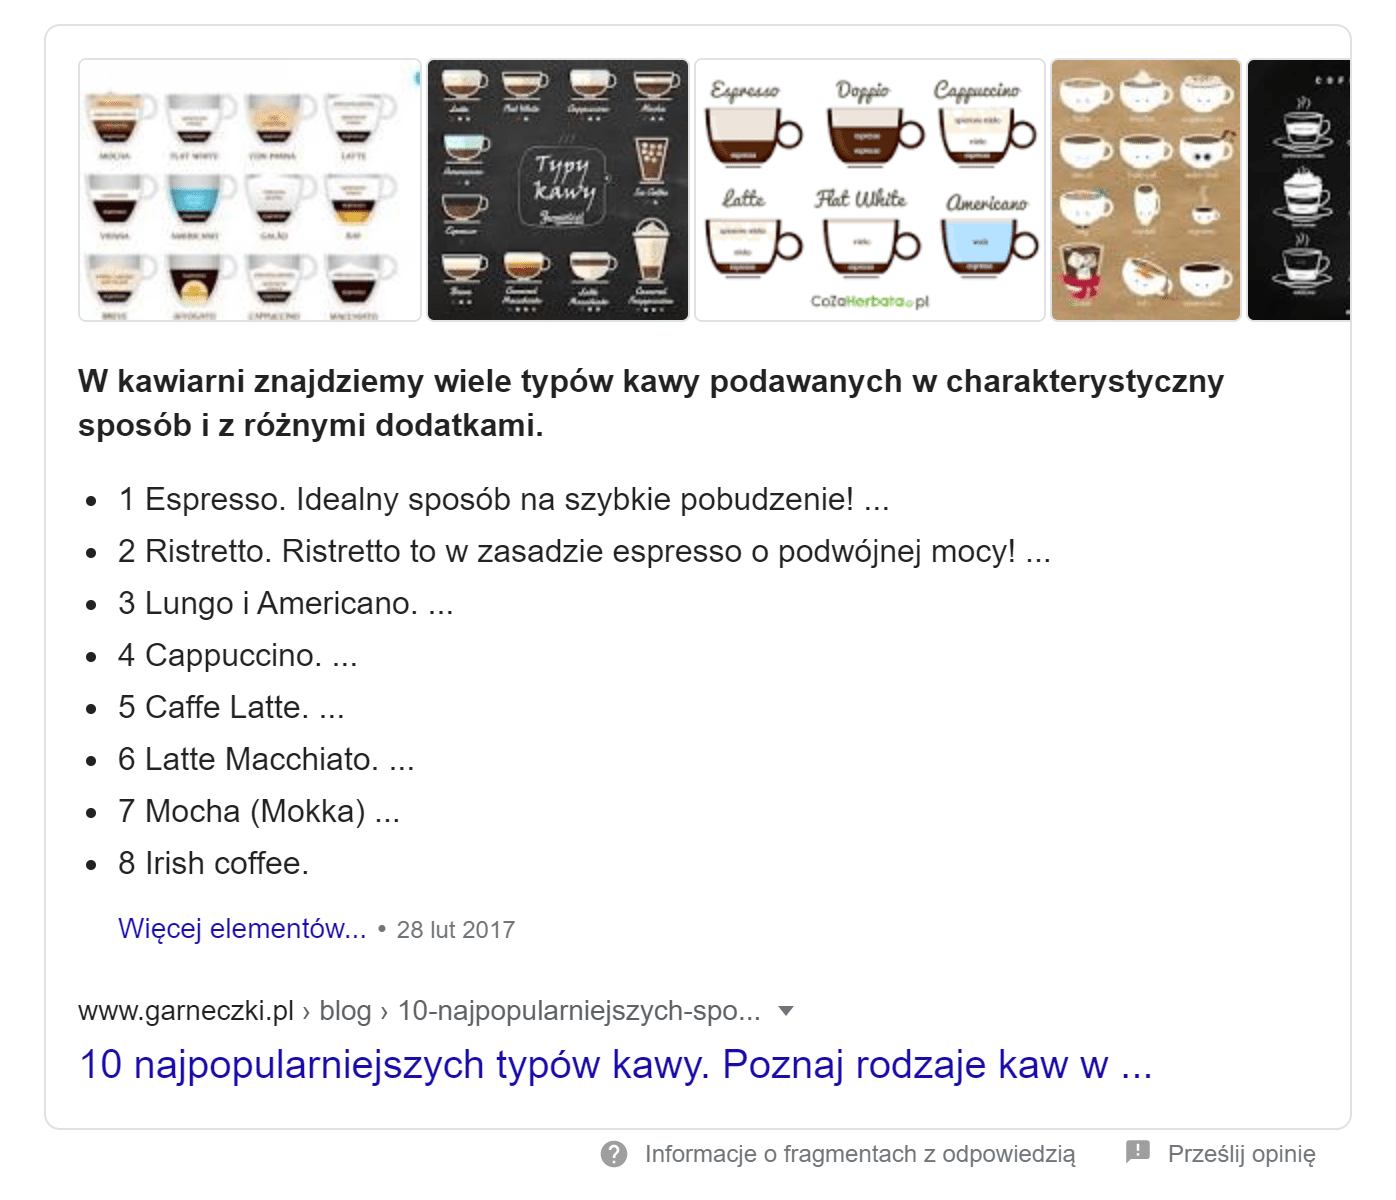 featured snippet jako wynik 0